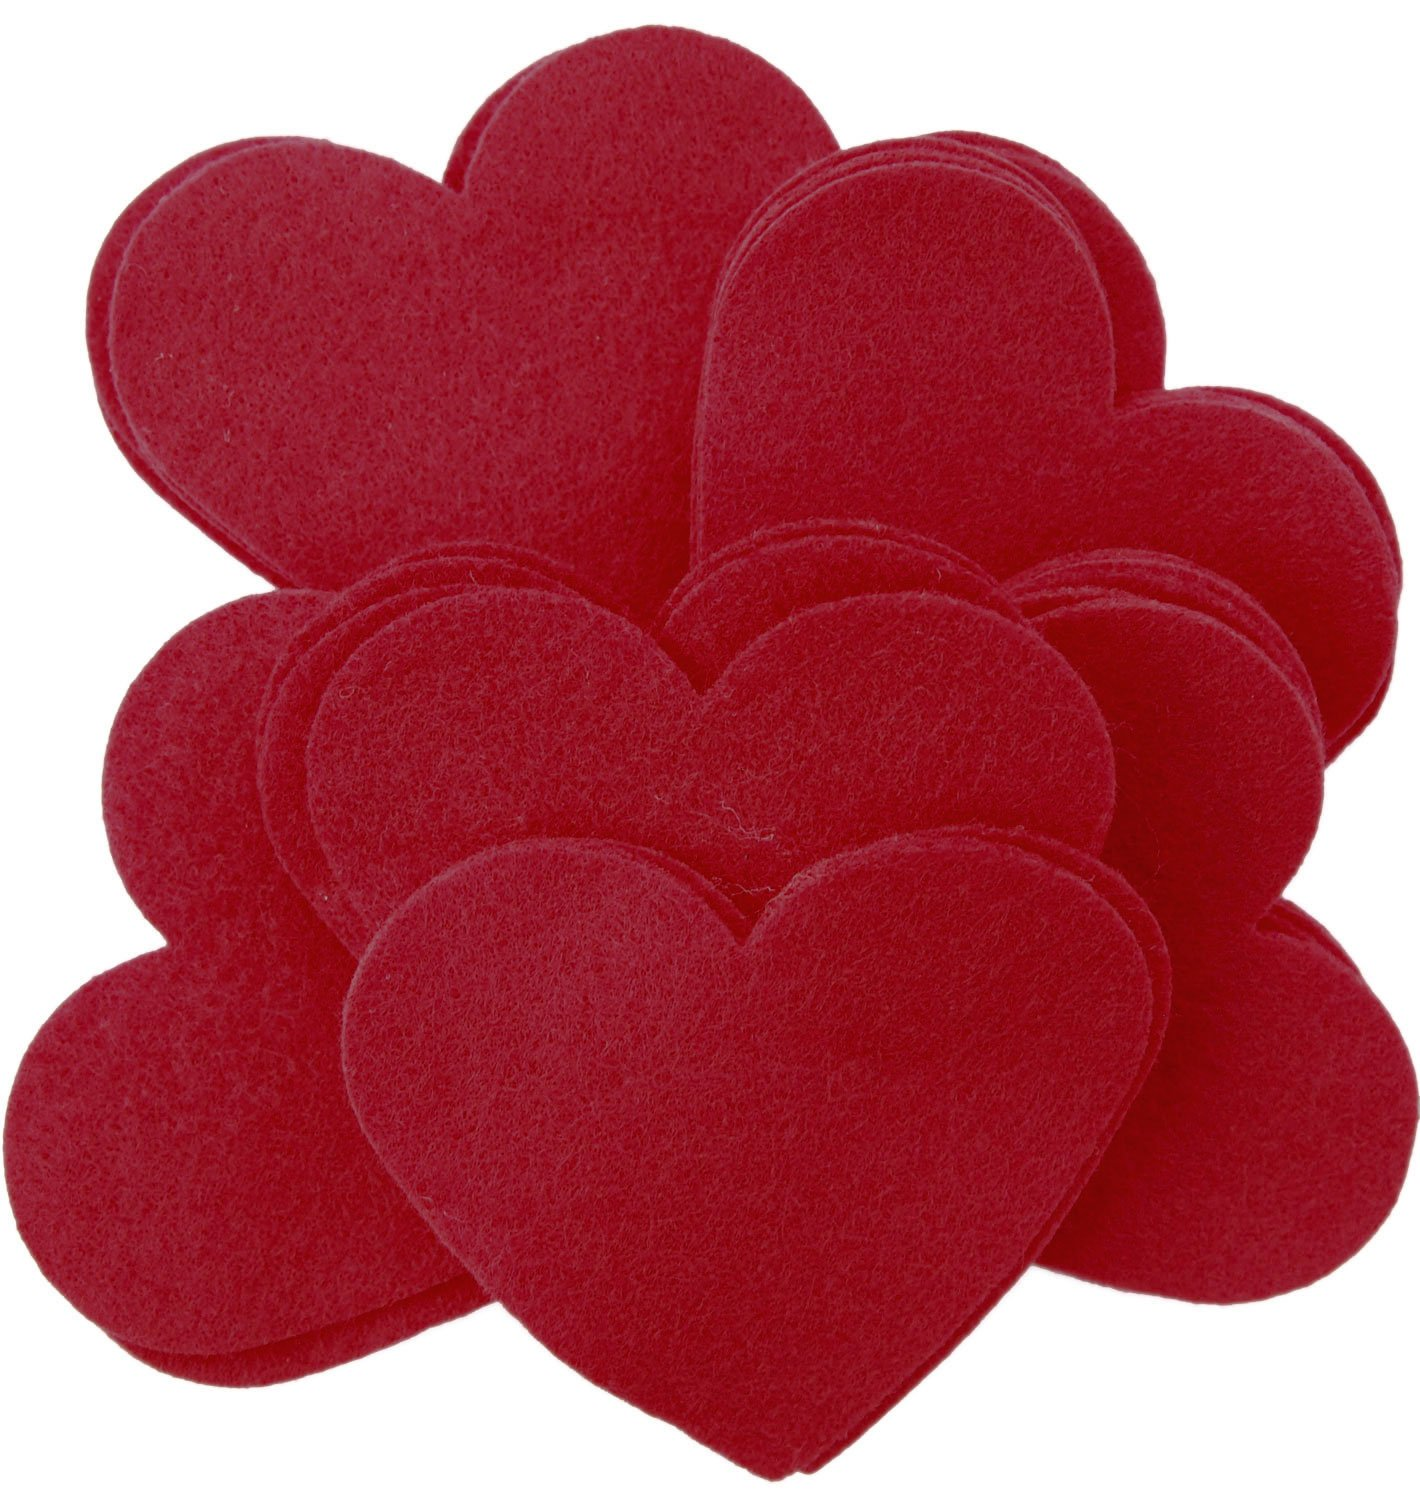 Playfully Ever After 3 Inch Cardinal Red 28pc Felt Hearts